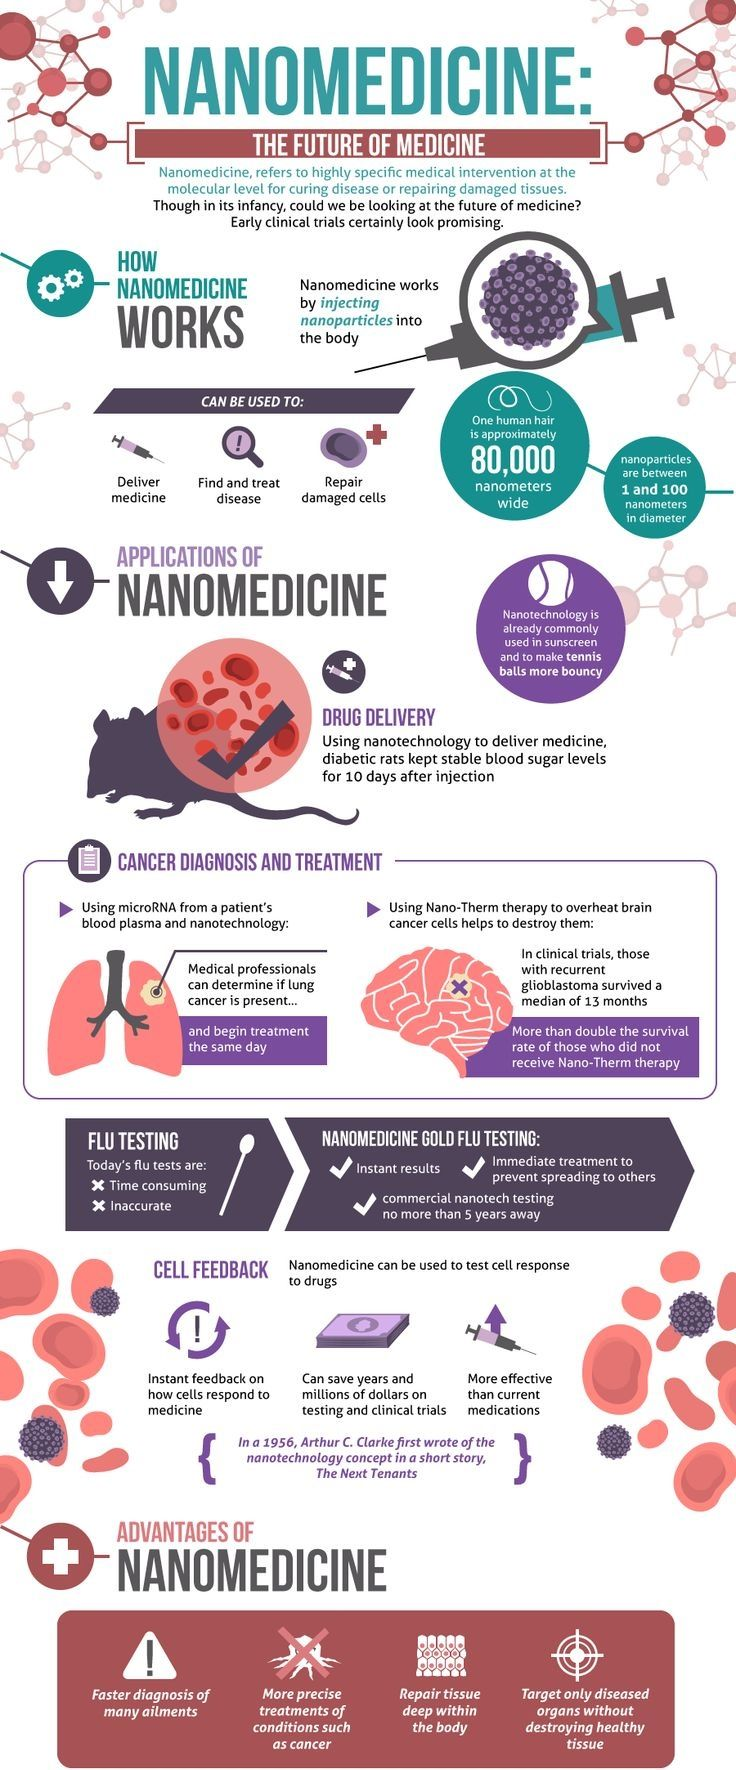 Cancer-fighting nanorobots. More about nanomedicine here: www.nkclinic.gr https://www.facebook.com/pages/NK-Clinic/110499602379675?fref=photo